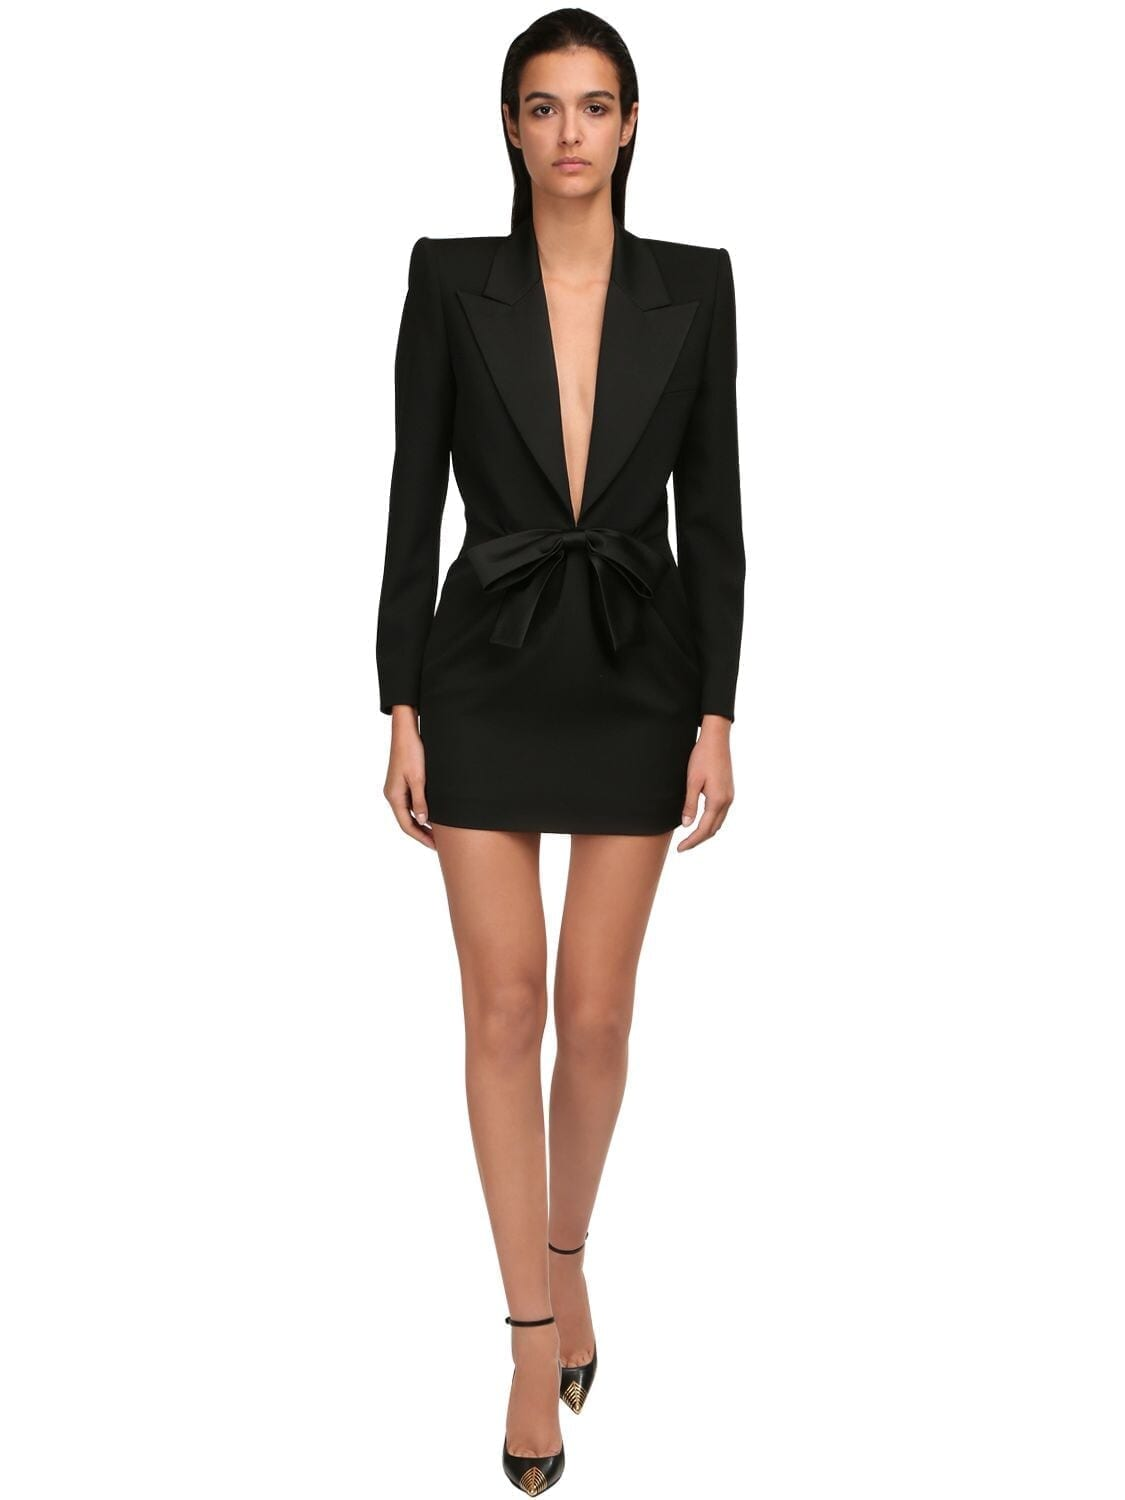 SAINT LAURENT Wool Grain De Poudre Mini Dress